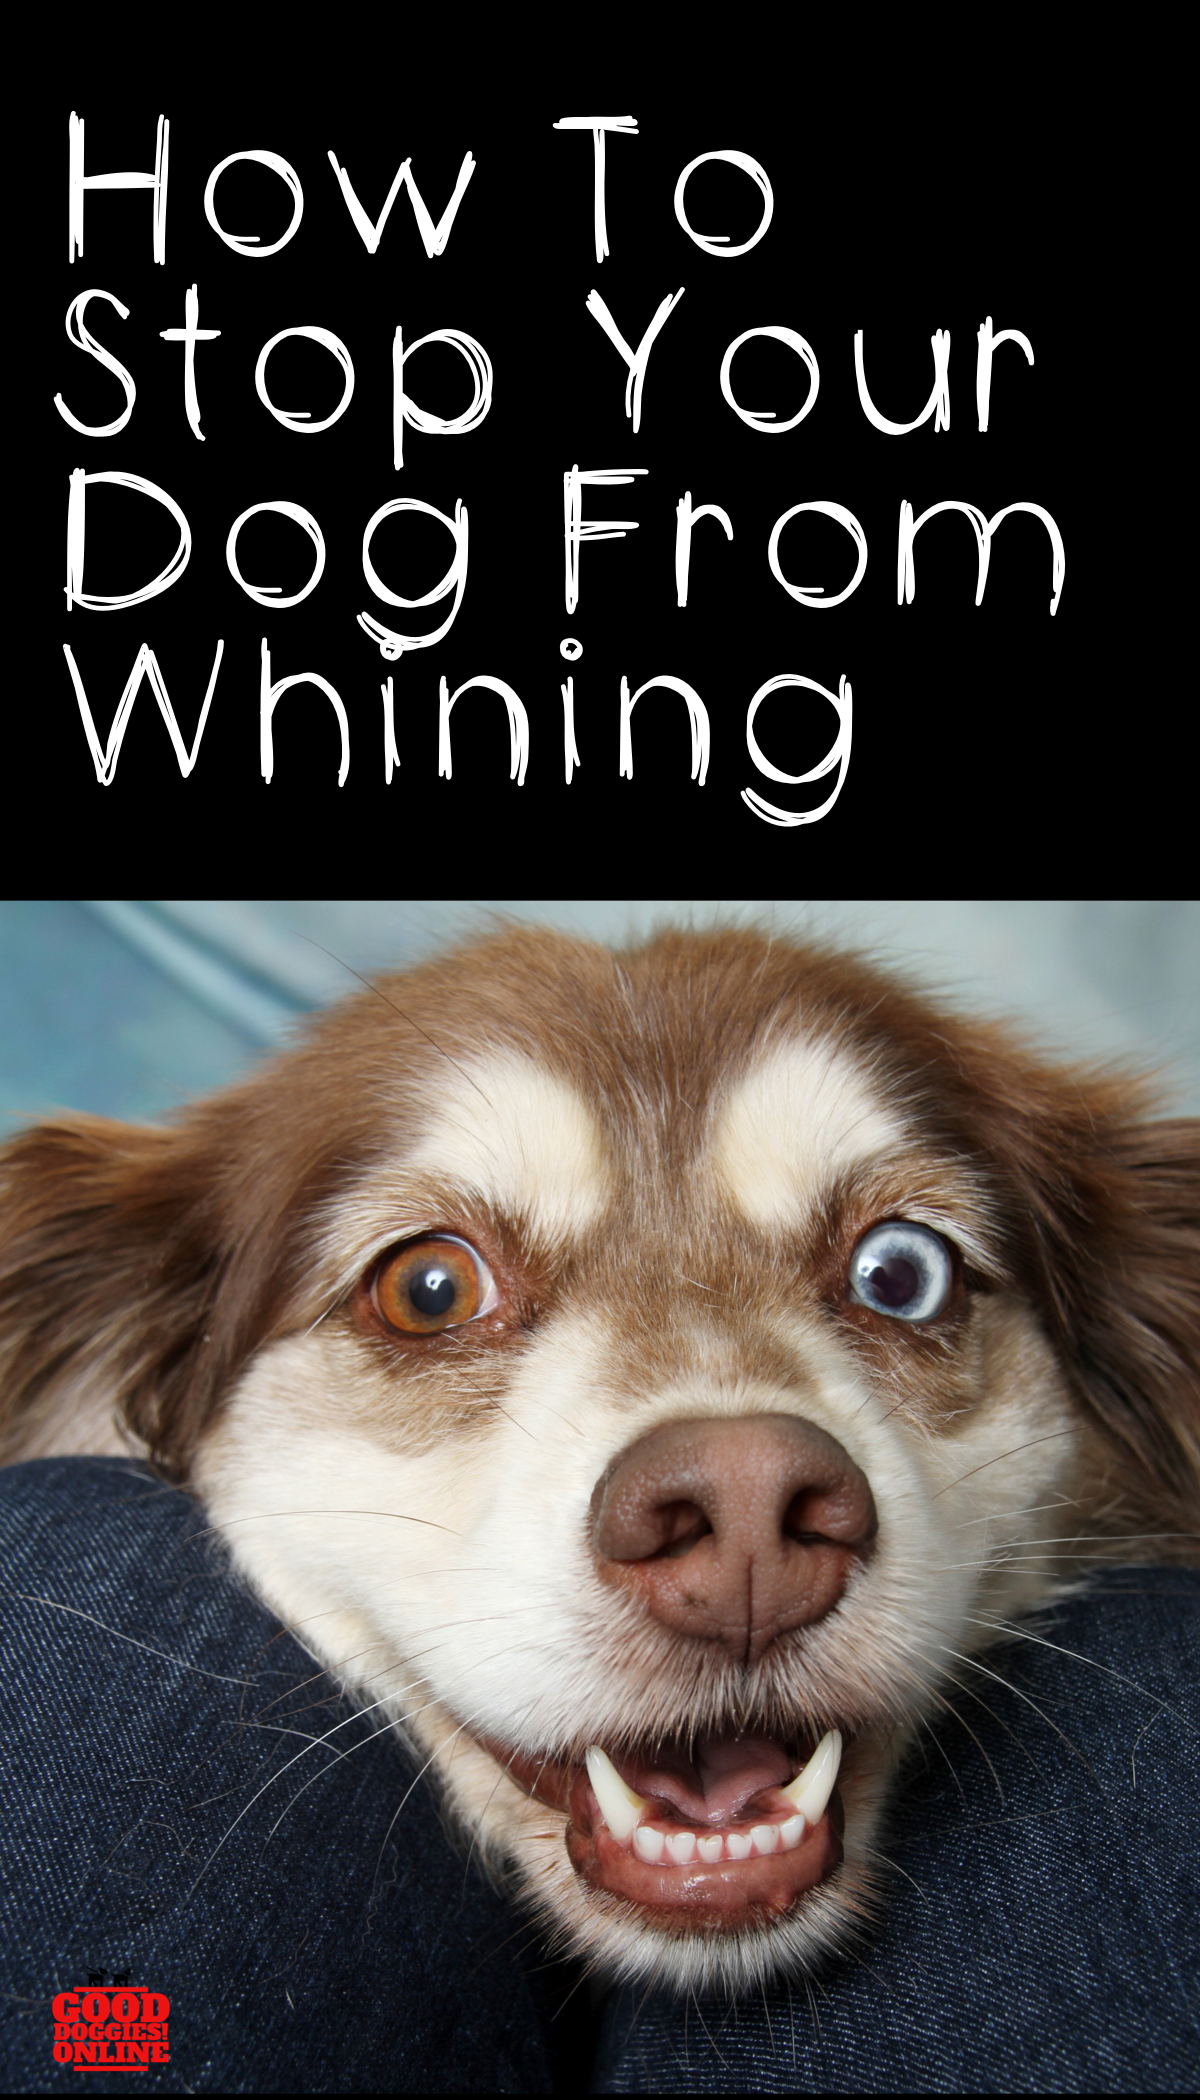 How To Stop Your Dog From Whining Good Doggies Online Your Dog Dogs Good Doggies Online